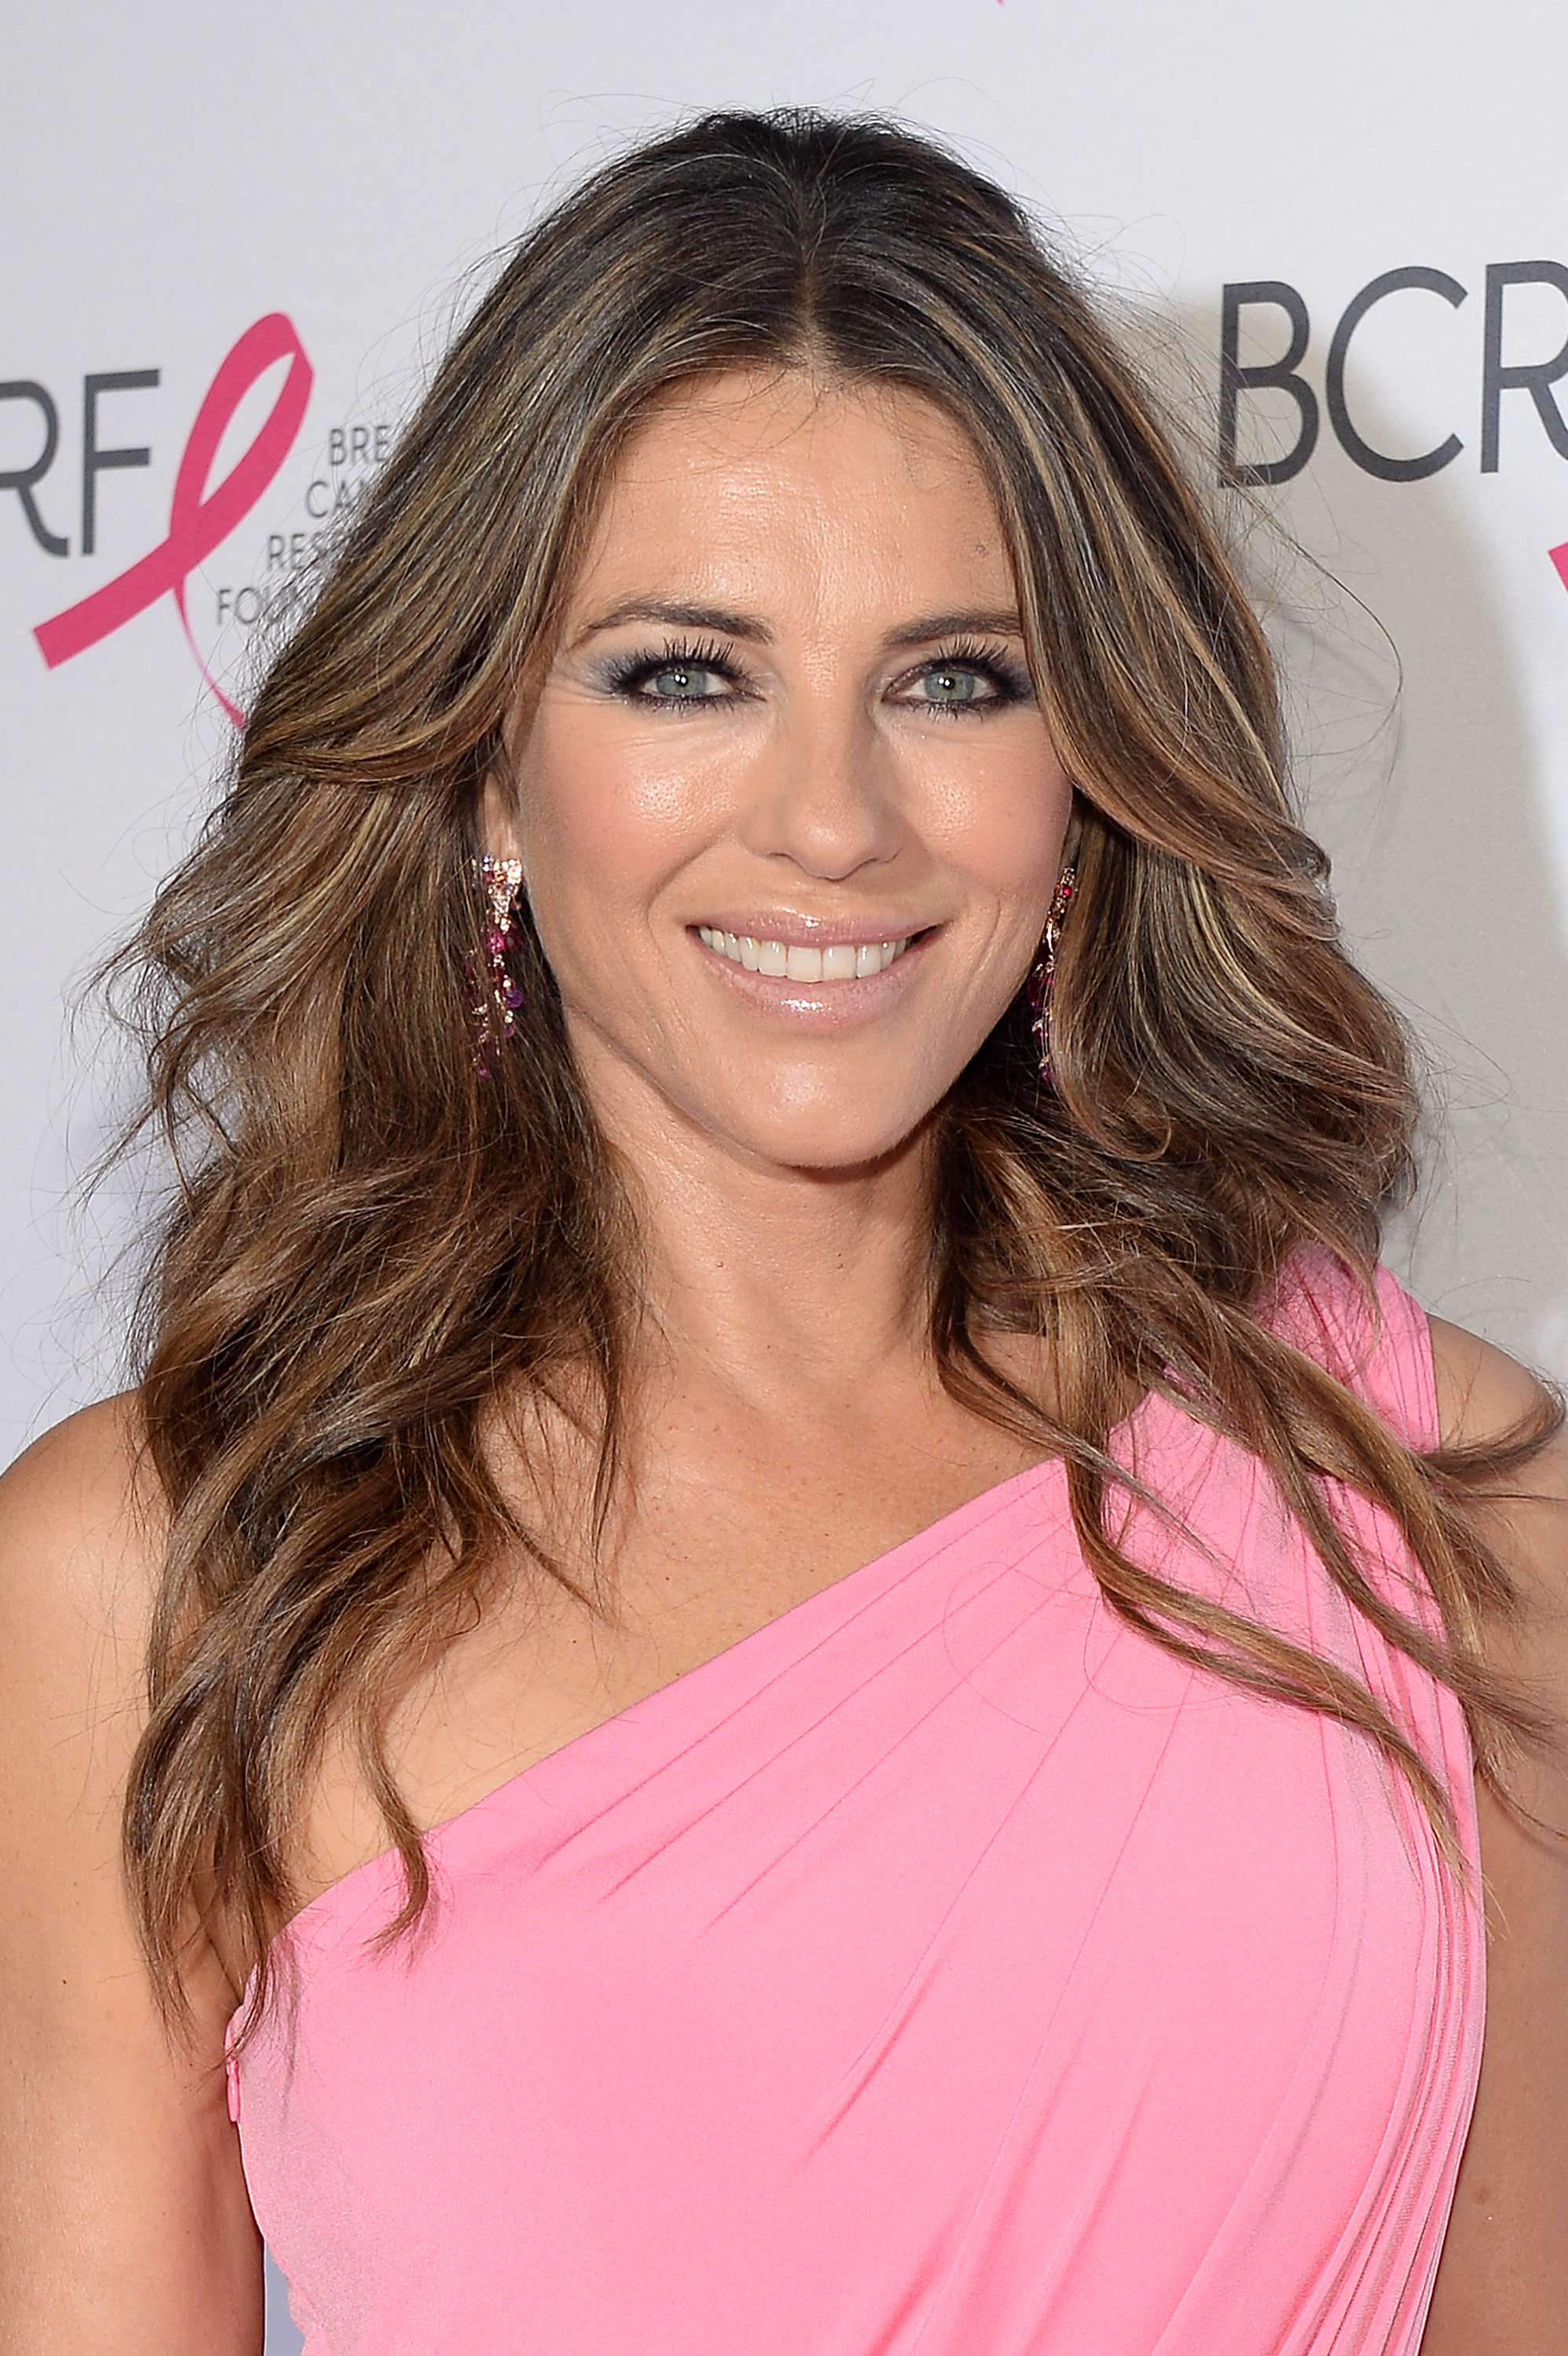 """<p>Elizabeth Hurley wears many hats -- actress, model, bikini designer -- but the role that has long been the closest to her heart is being the Global Ambassador for Estée Lauder's breast cancer campaign, BCA.</p> <p>The<em> Bedazzled</em> star has been the face of the cosmetic giant's global breast cancer charity since signing on as a brand ambassador in the mid '90s.</p> <p>""""No one talked about breast cancer in those days. Cancer was a dirty word – it was whispered – as if it were contagious even to say it, my grandmother, who was fabulous and from a large, happy family, didn't talk about it, even to my mother,"""" Hurley told <em><a href=""""https://www.google.com.au/search?rlz=1C1CHFX_enAU747AU747&q=liz+hurley+dailymail&oq=liz+hurley+dailymail&gs_l=psy-ab.3..0i10k1j0i22i10i30k1.3058.6161.0.6374.21.16.3.0.0.0.298.2374.0j9j3.12.0.dummy_maps_web_fallback...0...1.1.64.psy-ab..7.12.1719...0j0i22i30k1j0i13k1j0i8i13i10i30k1j0i8i13i30k1.0.Shw7GNPdikw"""" target=""""_blank"""" draggable=""""false"""">Daily Mail UK.</a></em><br /> <br /> """"We found out later she'd had a double mastectomy but we didn't know when she had it; we weren't there for her. Now survival rates are higher and there are better treatments. We've done a good job of spreading awareness. A world that doesn't have breast cancer – or one where you don't die of it – has to be the aim.""""<br /> <br /> With October being Breast Cancer Awareness Month and the 25th anniversary of the campaign (it launched in 1992 by Evelyn H. Lauder), Hurley kick-started the celebrations by surprising passengers on a flight from London to New York and passing out pink ribbons over the weekend.</p> <p>Hurley's sky-high deed is the first of many events the actress will participate in to support the Breast Cancer Research Foundation.</p> <p>We here at HoneyStyle have decided to also think pink this October to raise awareness for Breast cancer. Click through to see our favourite beauty products that are donating a portion of their sales to the National Br"""